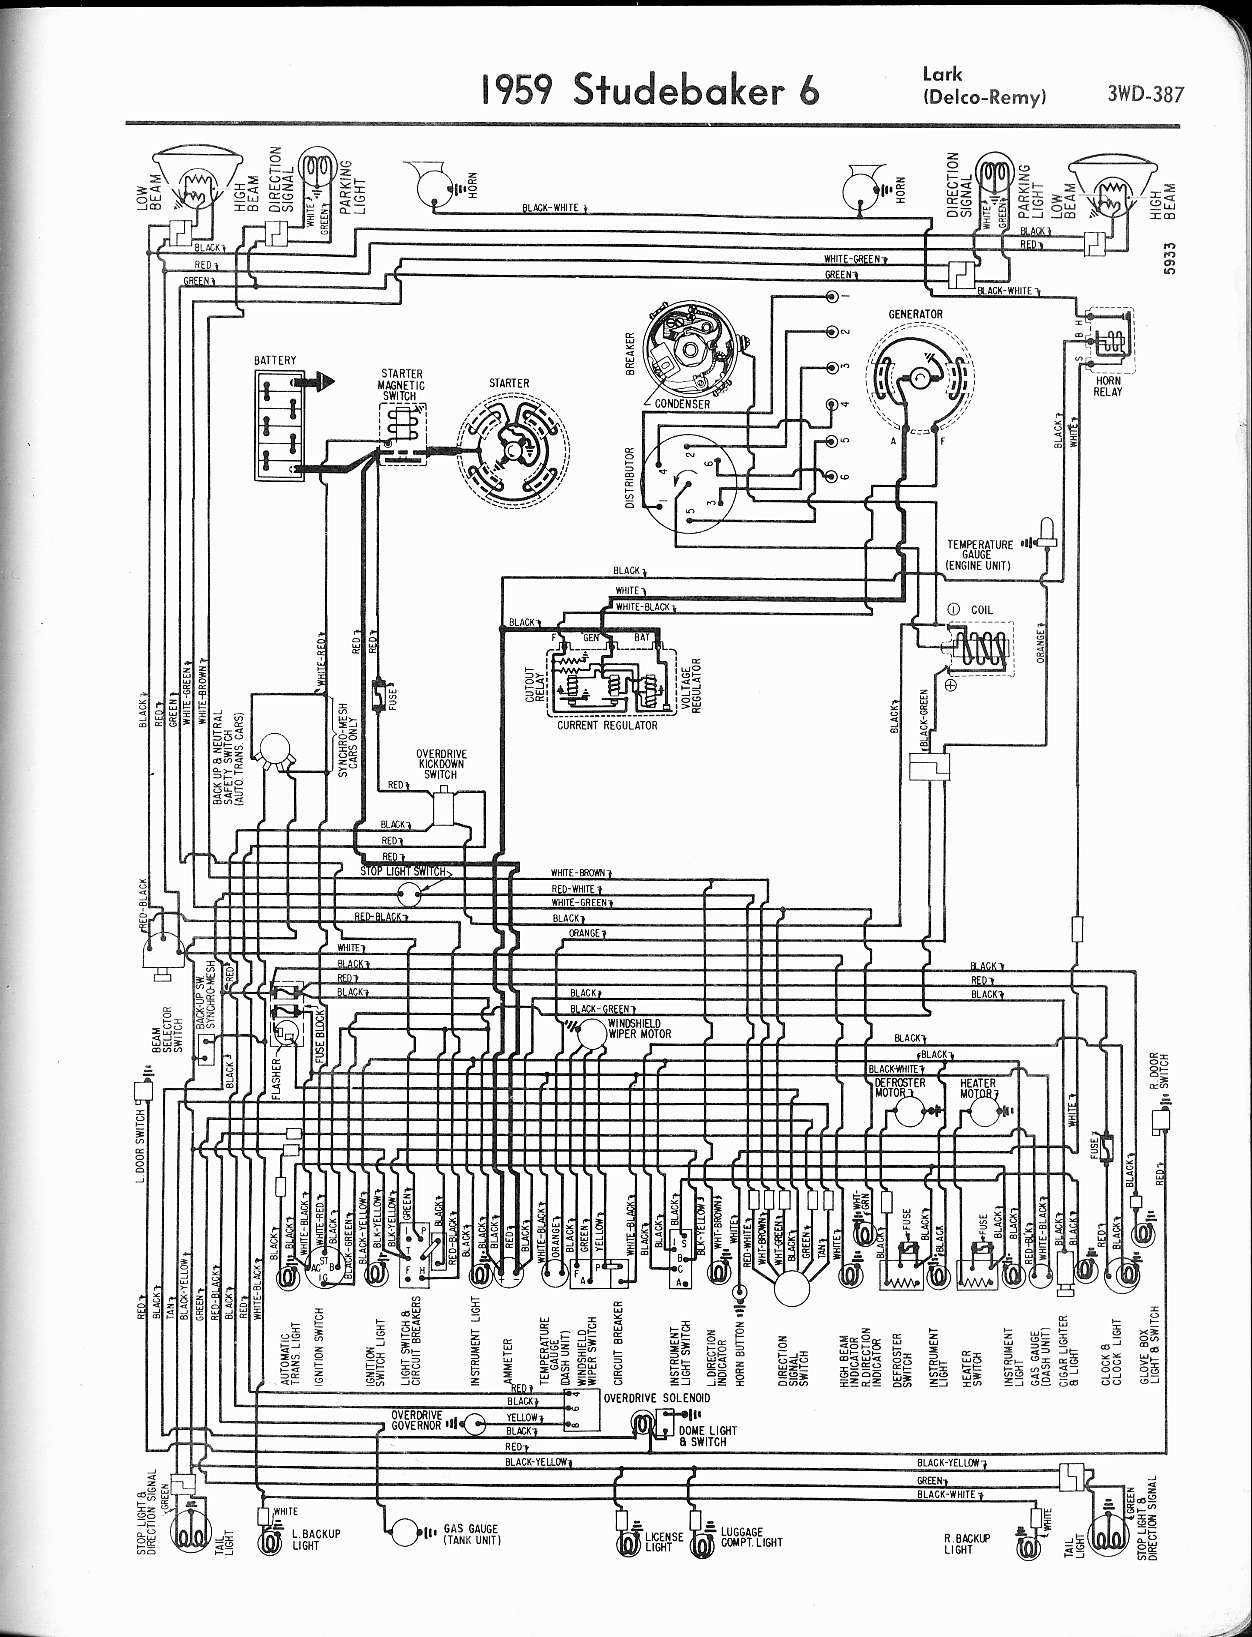 Wiring Diagram For 1959 Studebaker 6 Lark Delco Remy - Wiring ... on